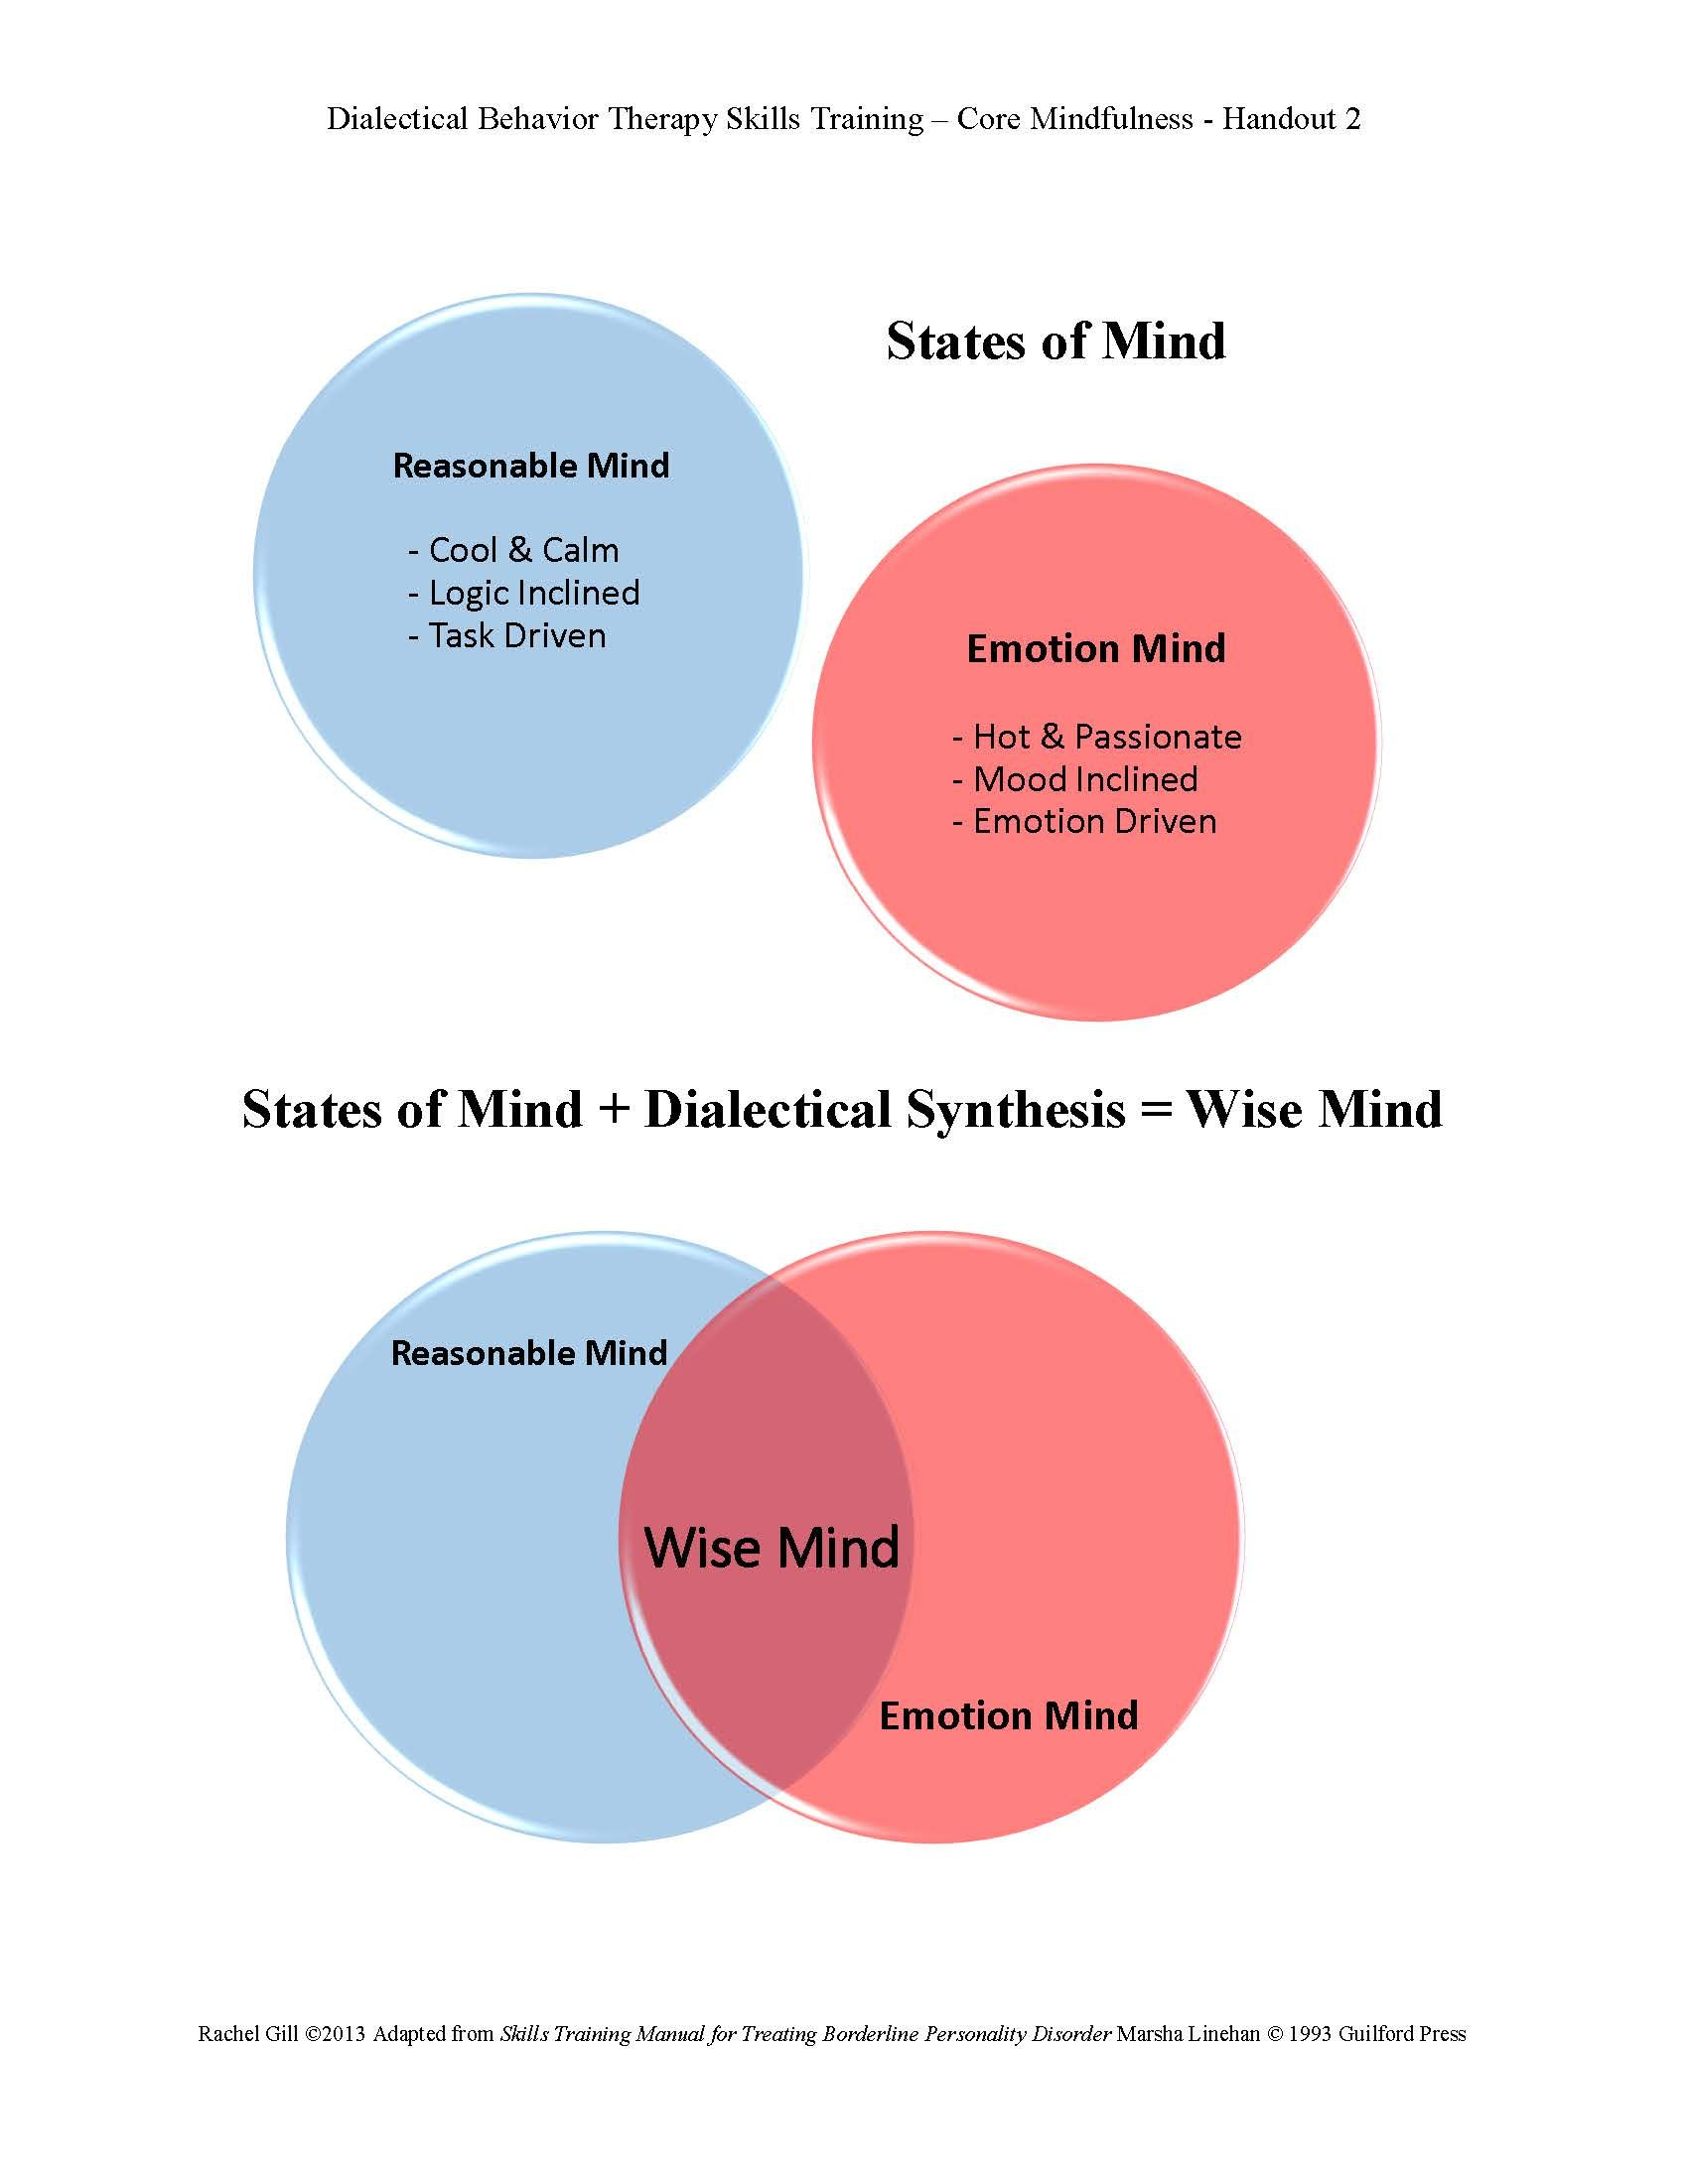 Dbt States Of Mind Rachel Gill C 2013 Adapted From Skills Training Manual For Treating Borderline Personality Dbt Dialectical Behavior Therapy Dbt Therapy